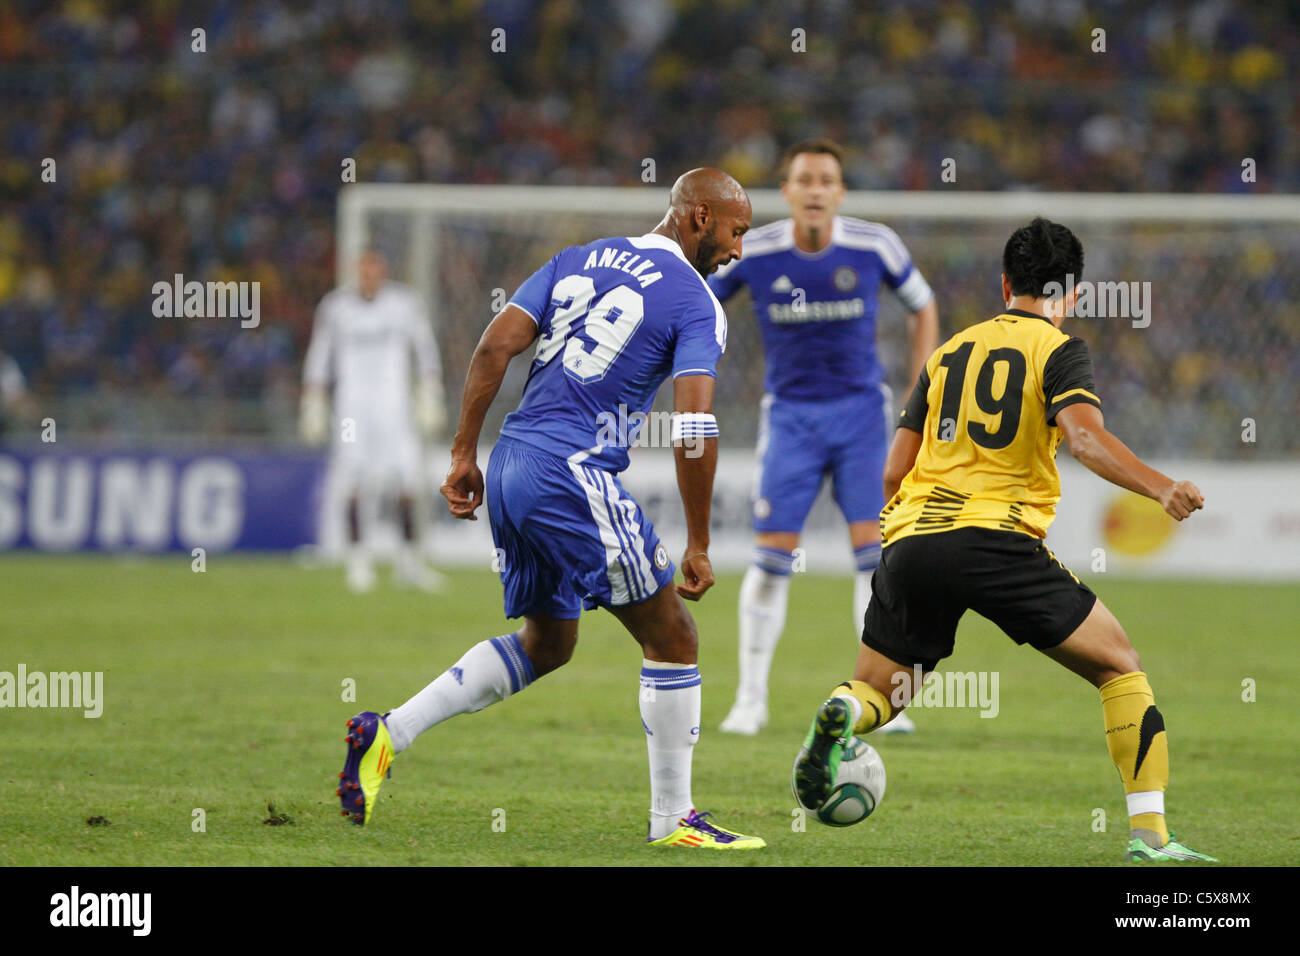 KUALA LUMPUR-JULY 21:Chelsea football club player Nicolas Anelka during a friendly match against Malaysia XI on - Stock Image